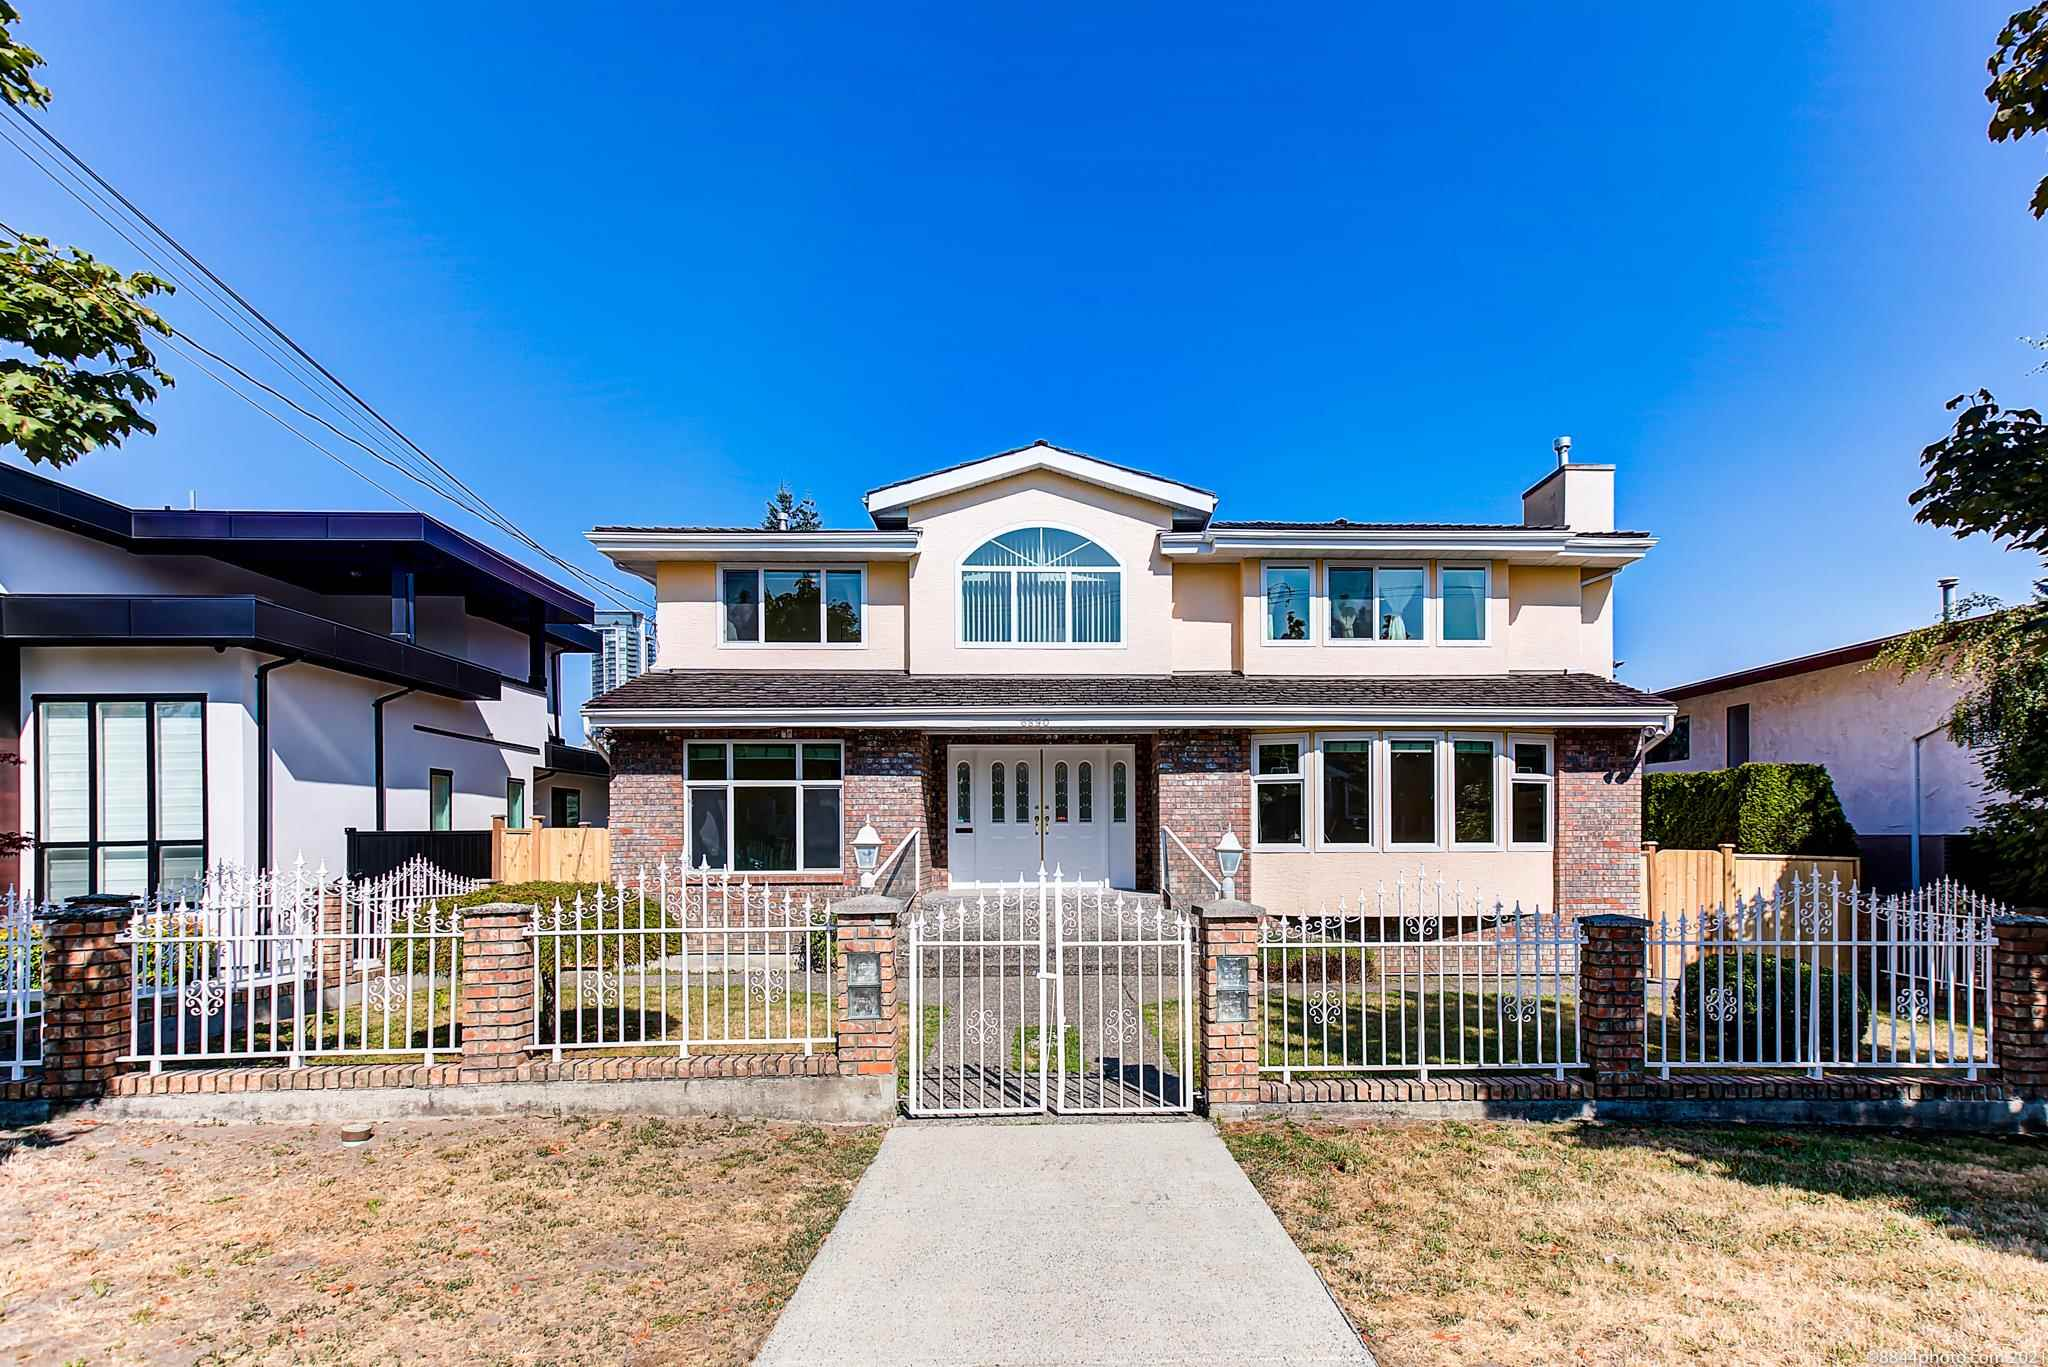 6890 FREDERICK AVENUE - Metrotown House/Single Family for sale, 6 Bedrooms (R2604695) - #1